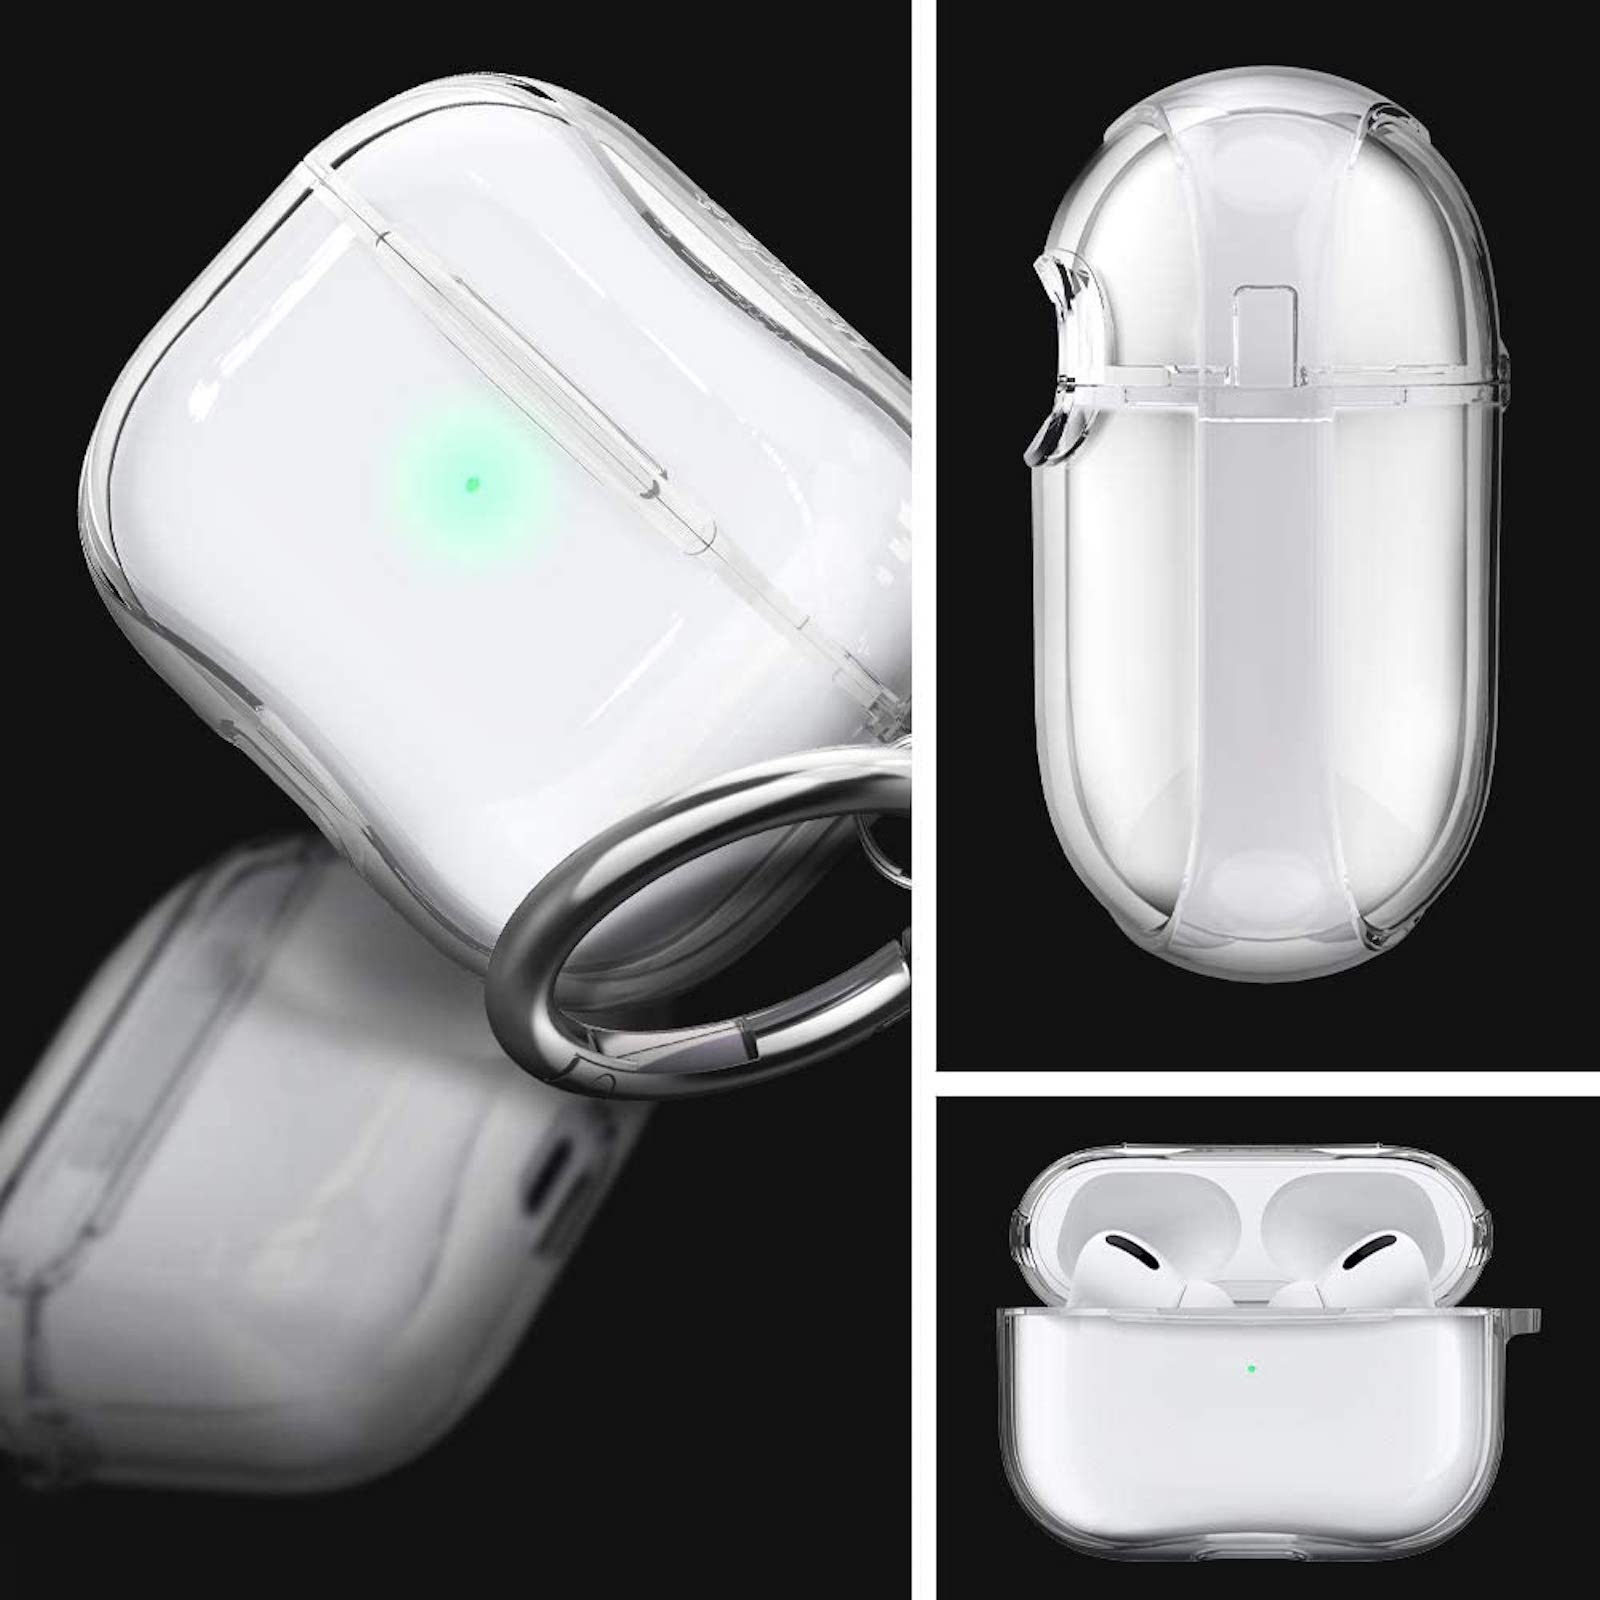 Spigen ultra hybrid airpodspro case sale 2